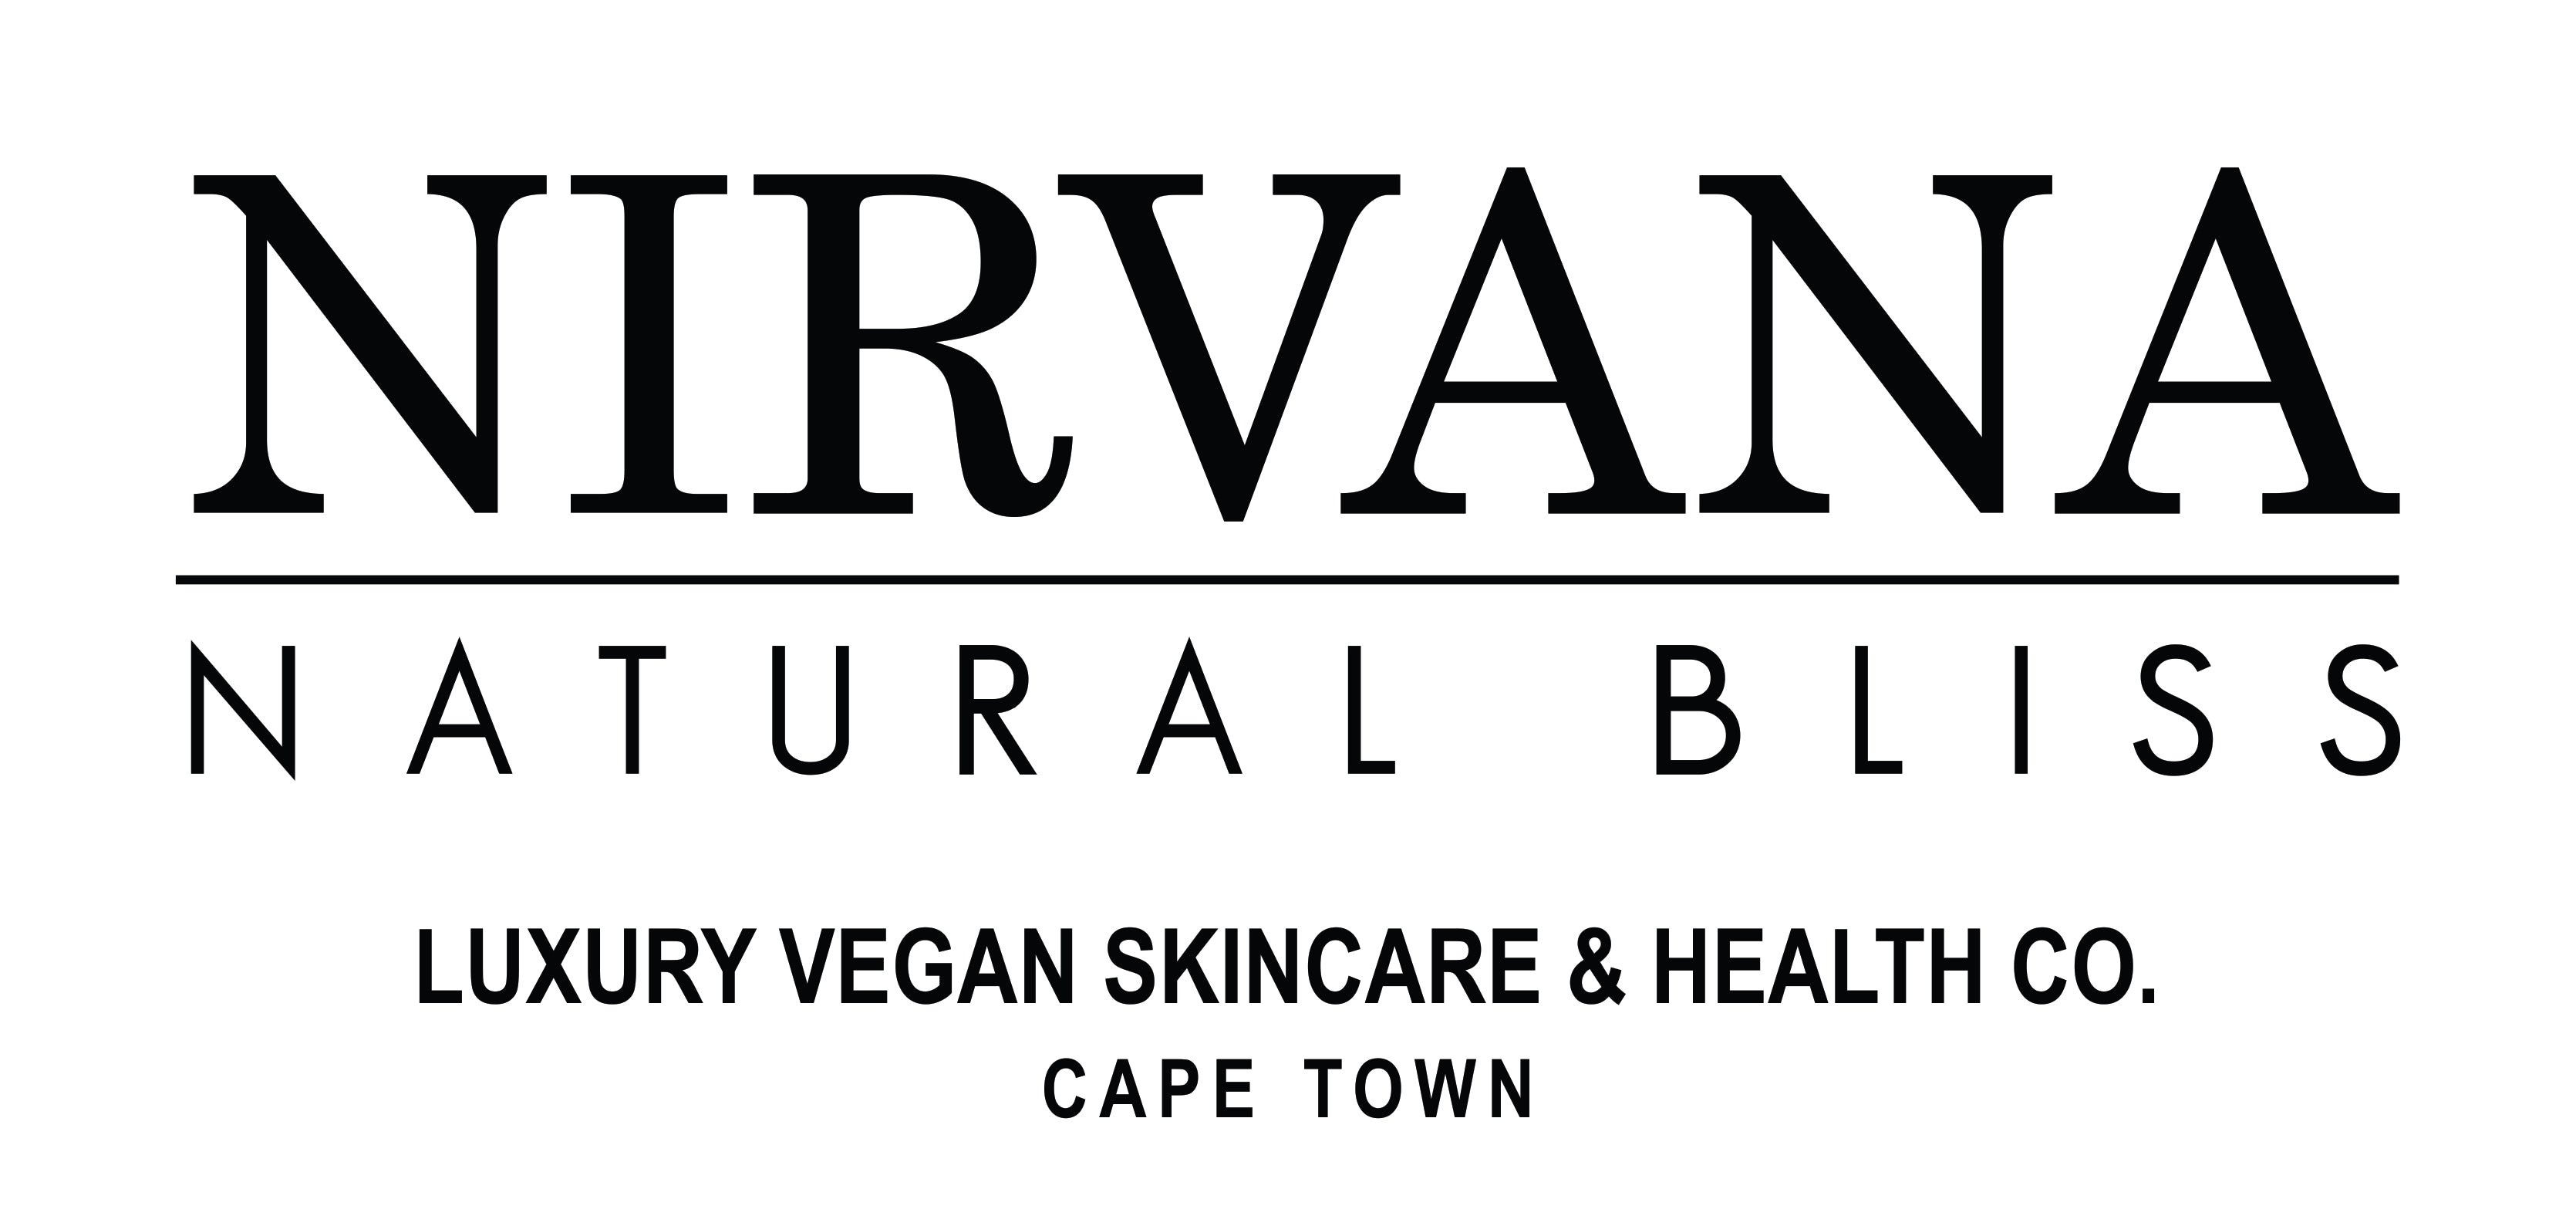 Nirvana Natural Bliss Luxury Vegan Skincare & Health Co.                                                                                                                                                                       Cape Town